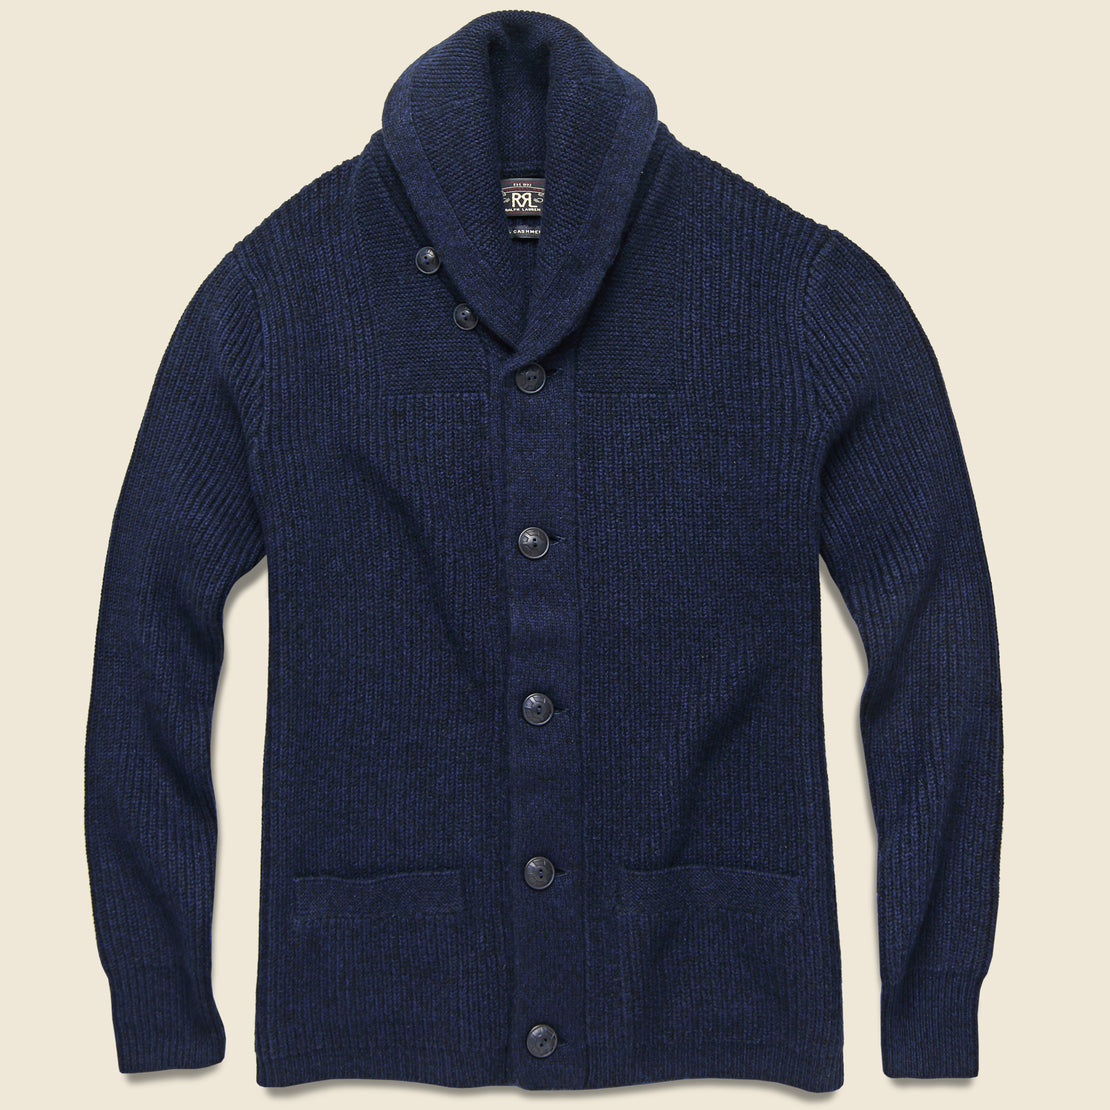 RRL Cashmere Shawl Cardigan - Blue Black